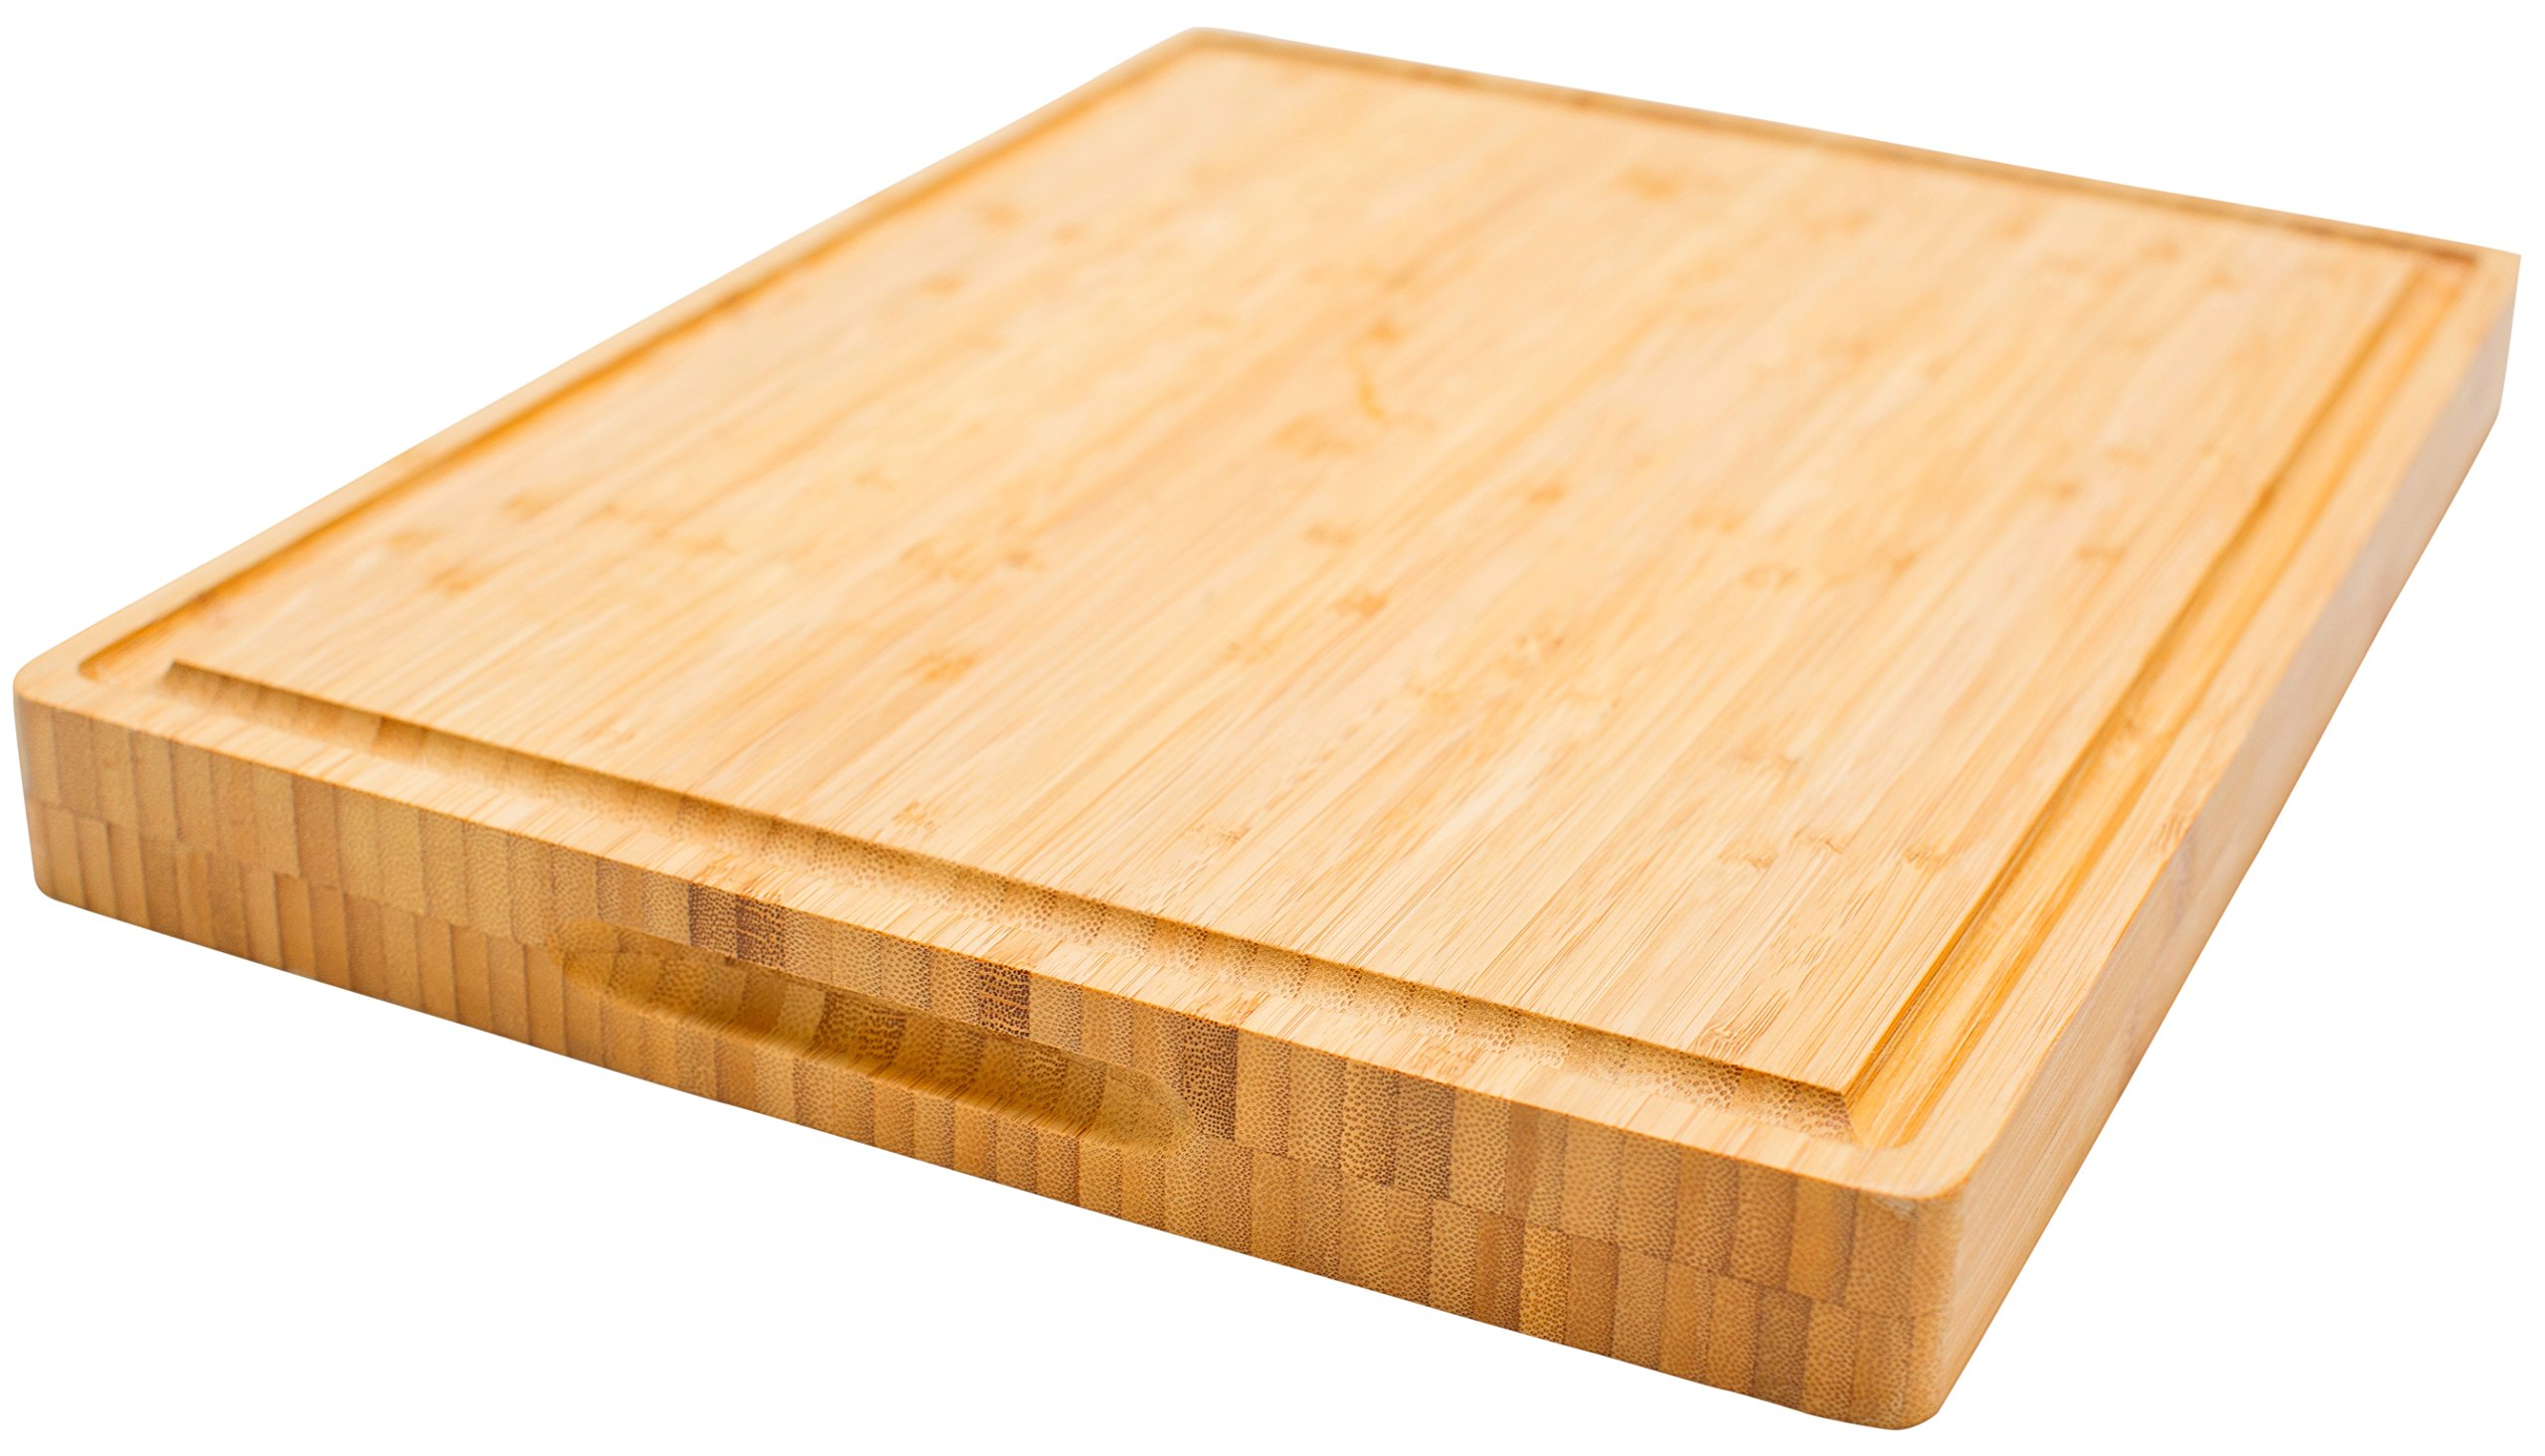 PREMIUM Butcher Block | Bamboo Cutting Board | X-Large | Organic & Anti-bacterial | Size 17''x13''x1.5'' | Compare & SAVE!